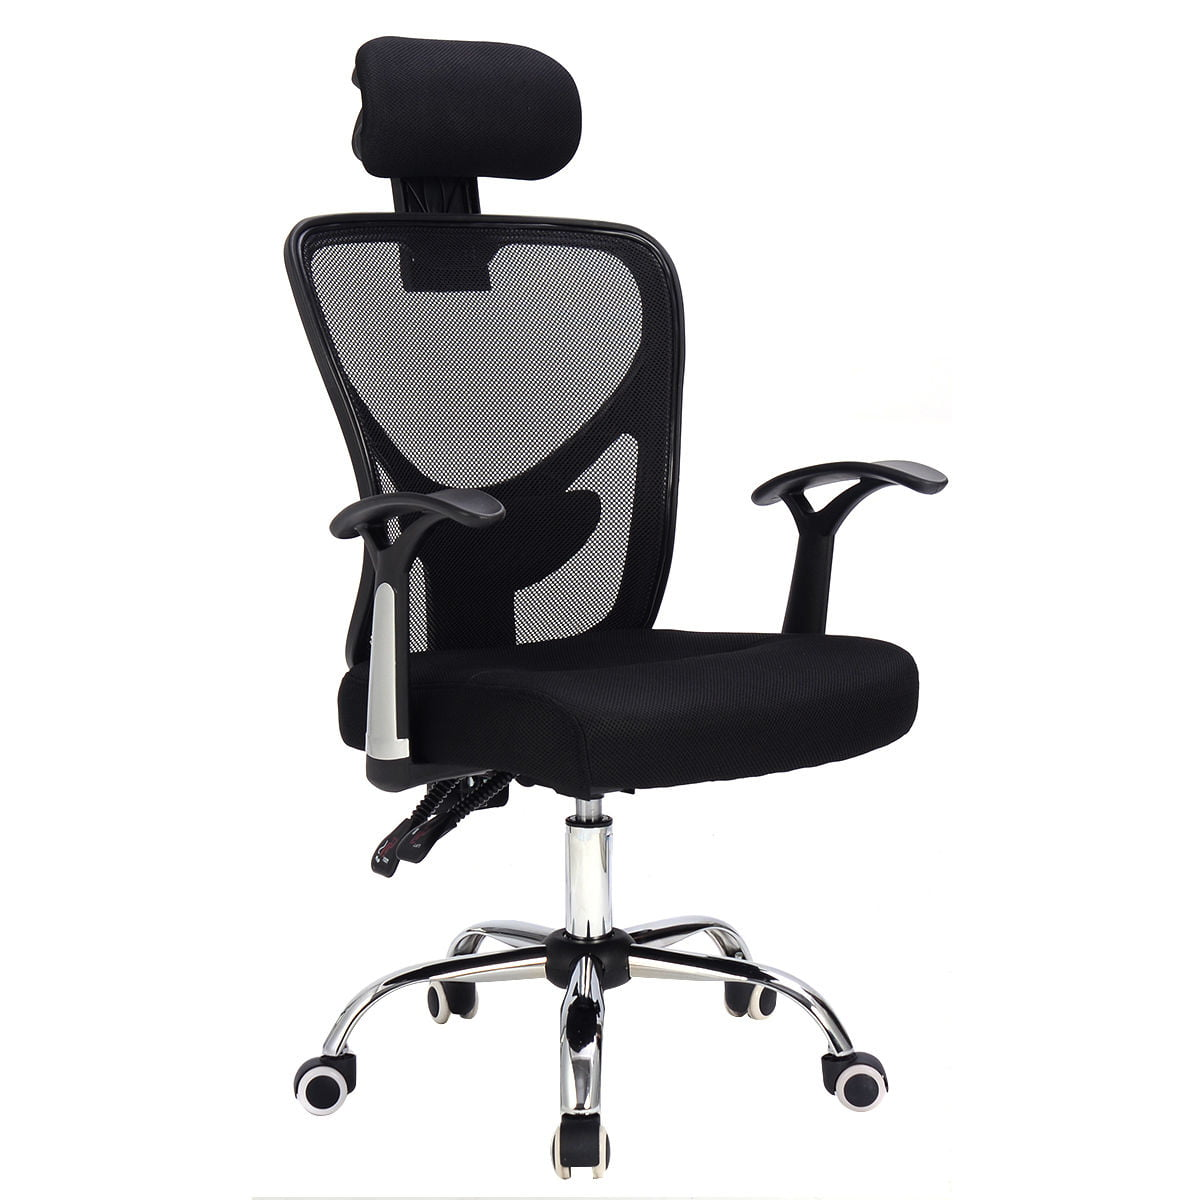 Picture of: Chairs Stools Modern Ergonomic Mesh High Back Executive Computer Desk Task Office Chair Black Business Industrial Vigraf Cl